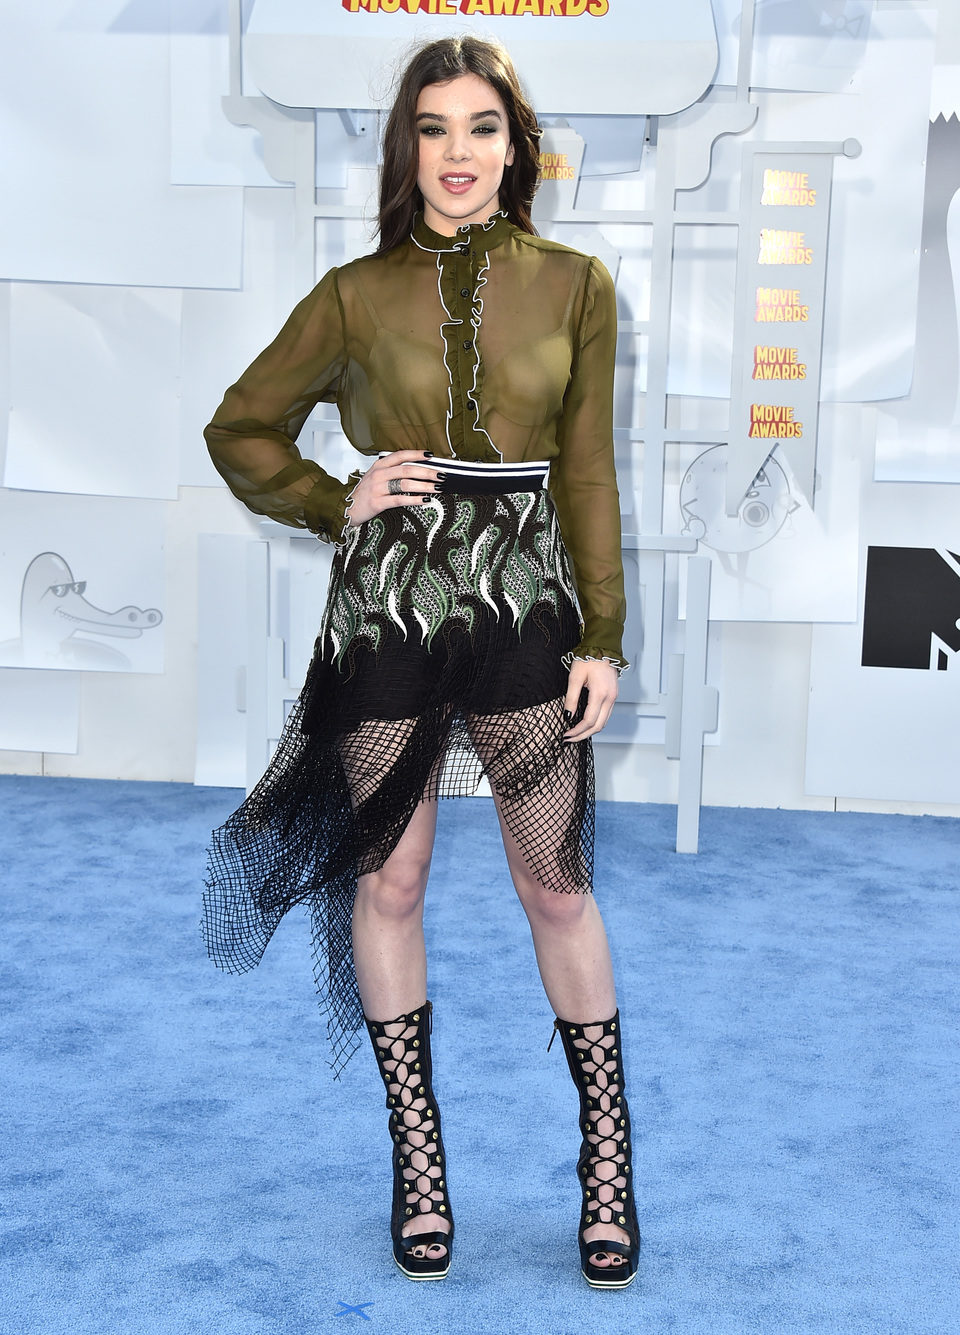 Hailee Steinfeld at the MTV Movie Awards 2015 red carpet